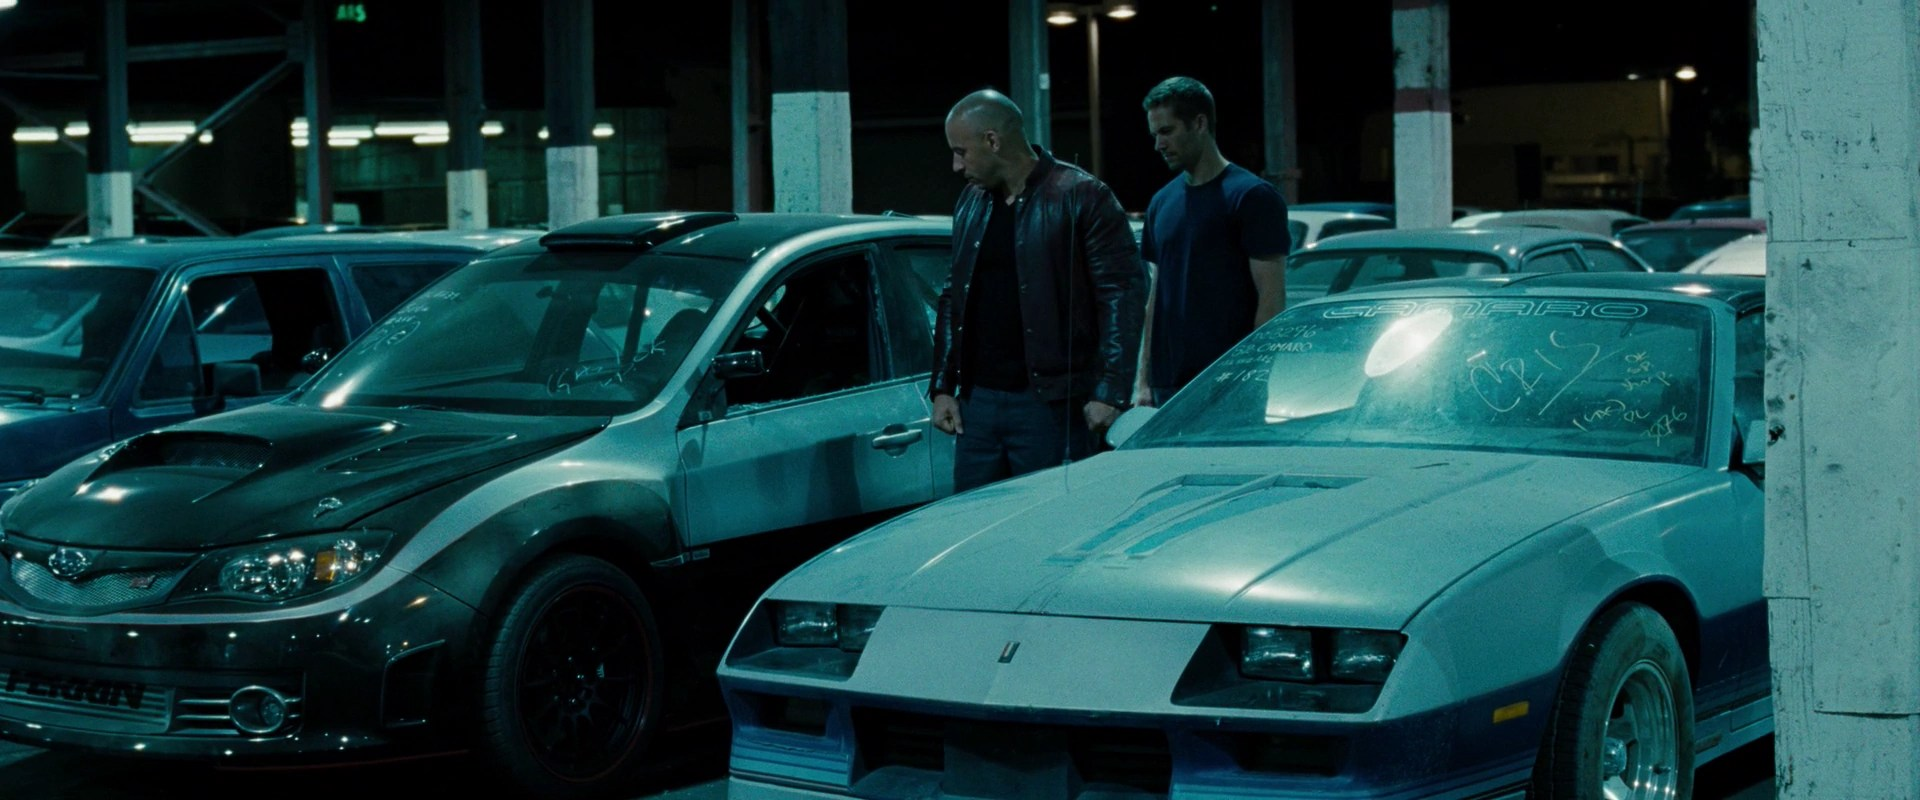 Letty Car Fast And Furious 2009 Subaru Impreza Wrx Sti Gh | The Fast And The Furious